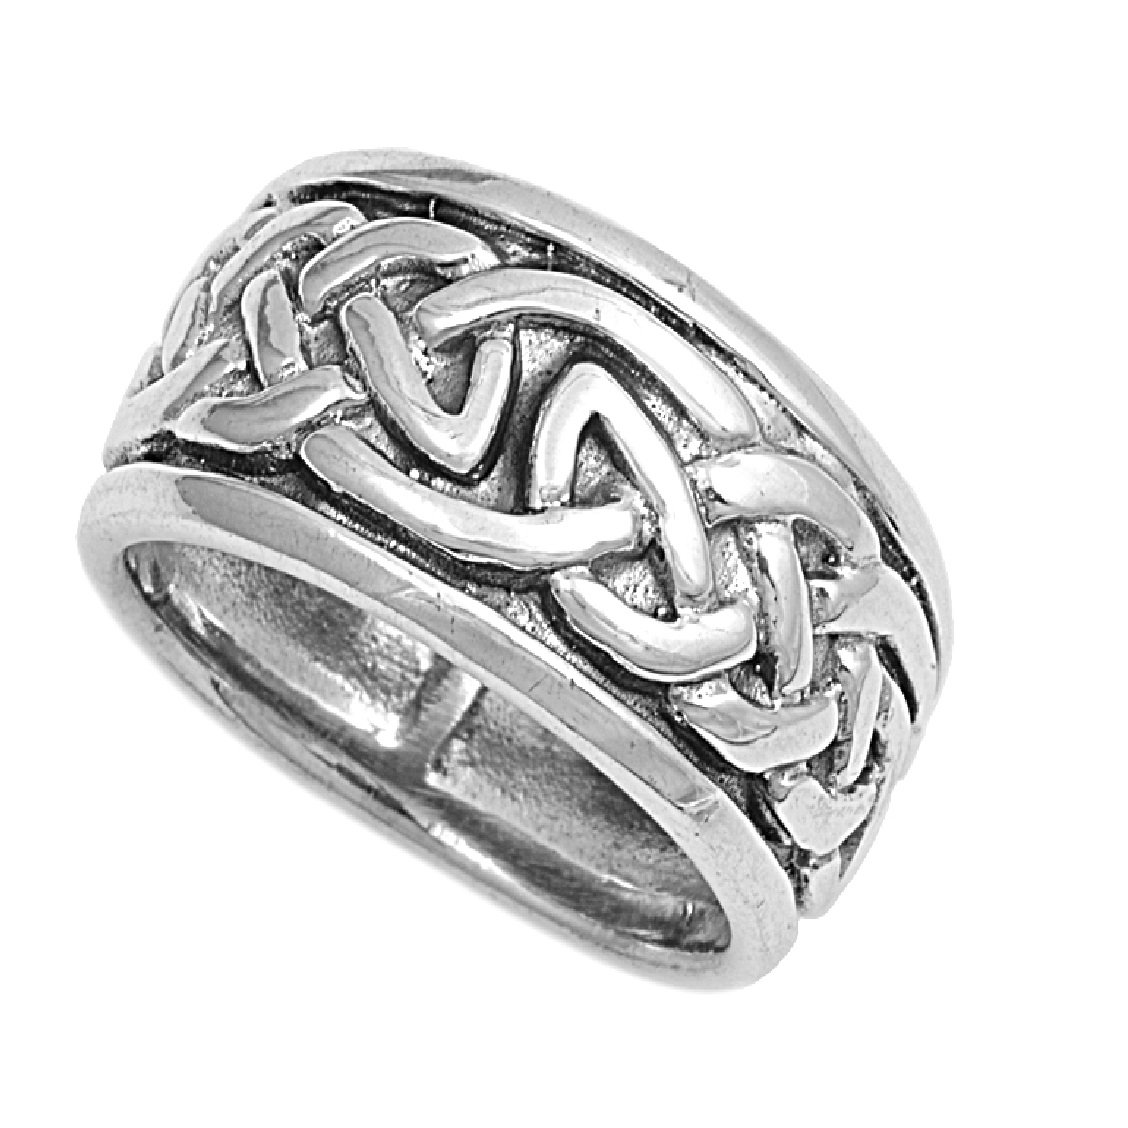 Princess Kylie 925 Sterling Silver Celtic Linked Chain Ring